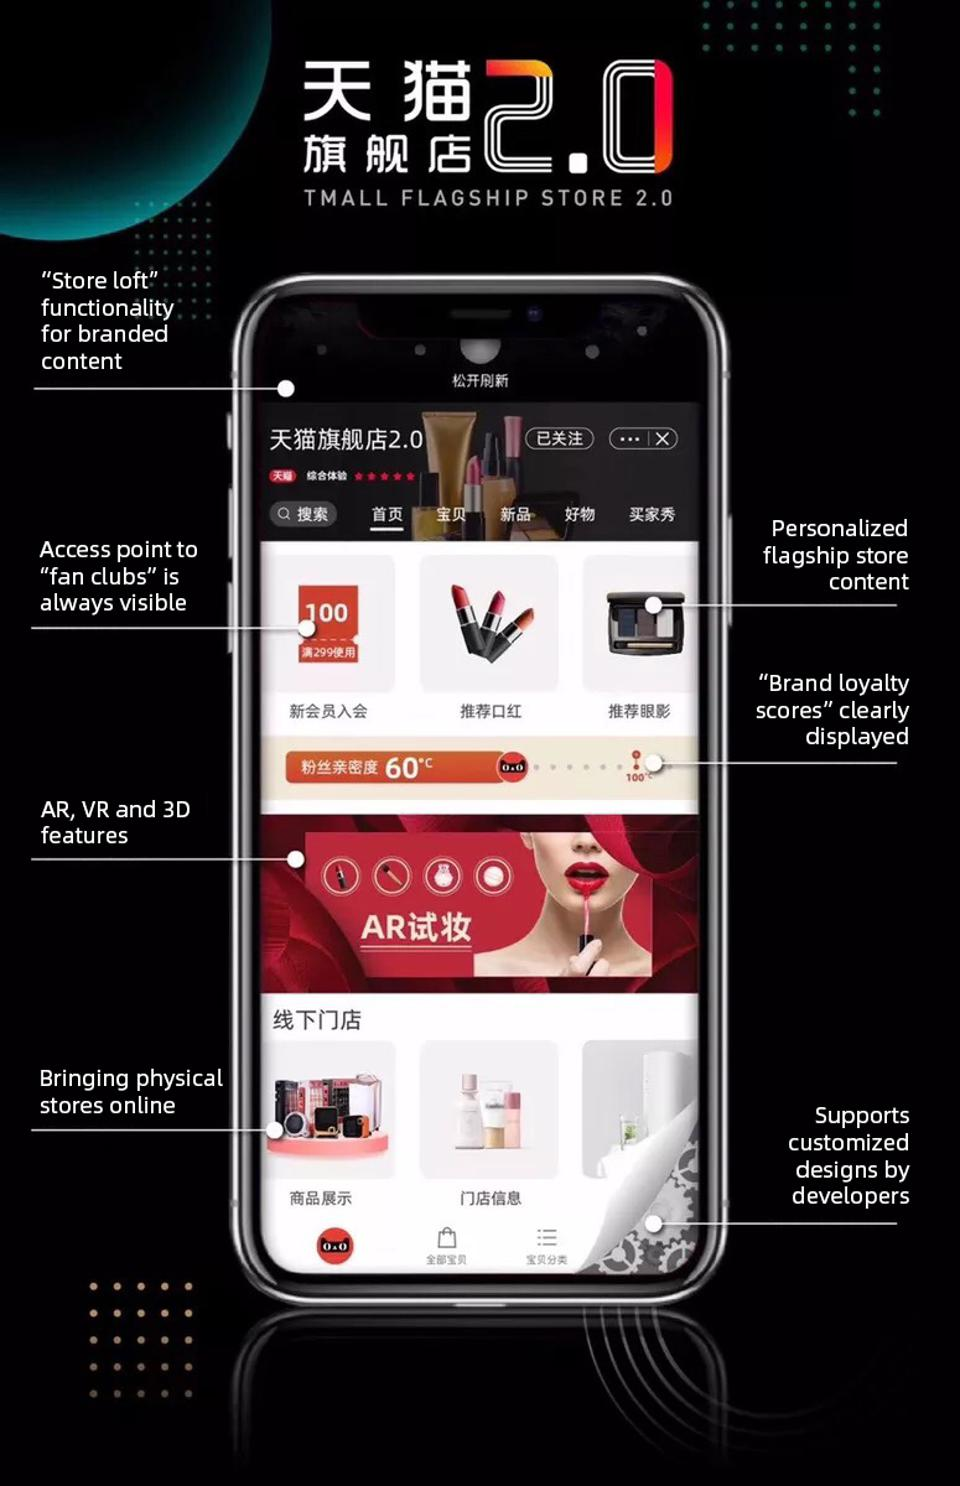 Tmall's Flagship Store 2.0 visually described